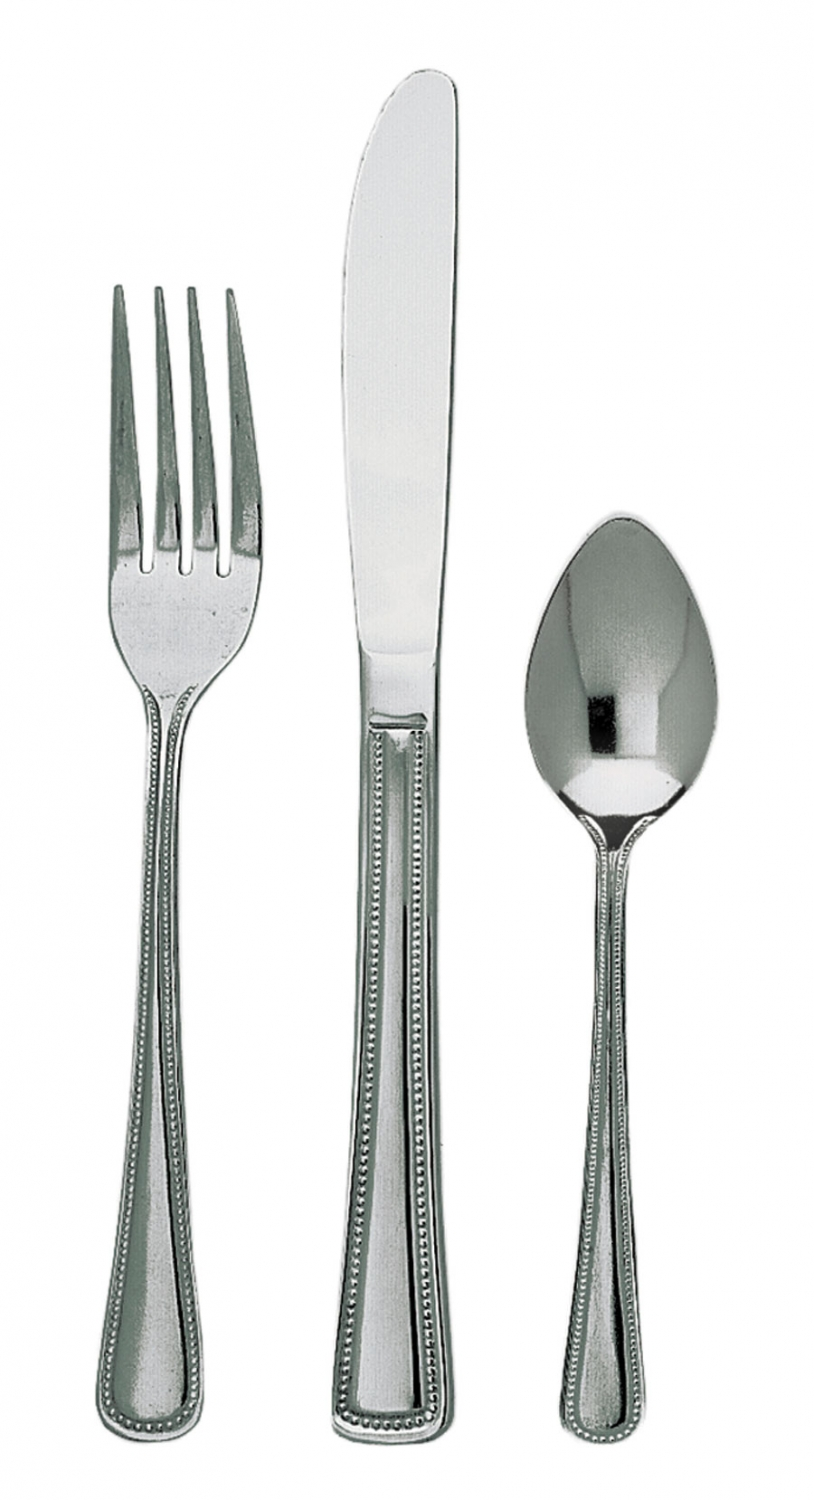 Update International HL-405 Harbor-Lite Dinner Fork - 1 doz